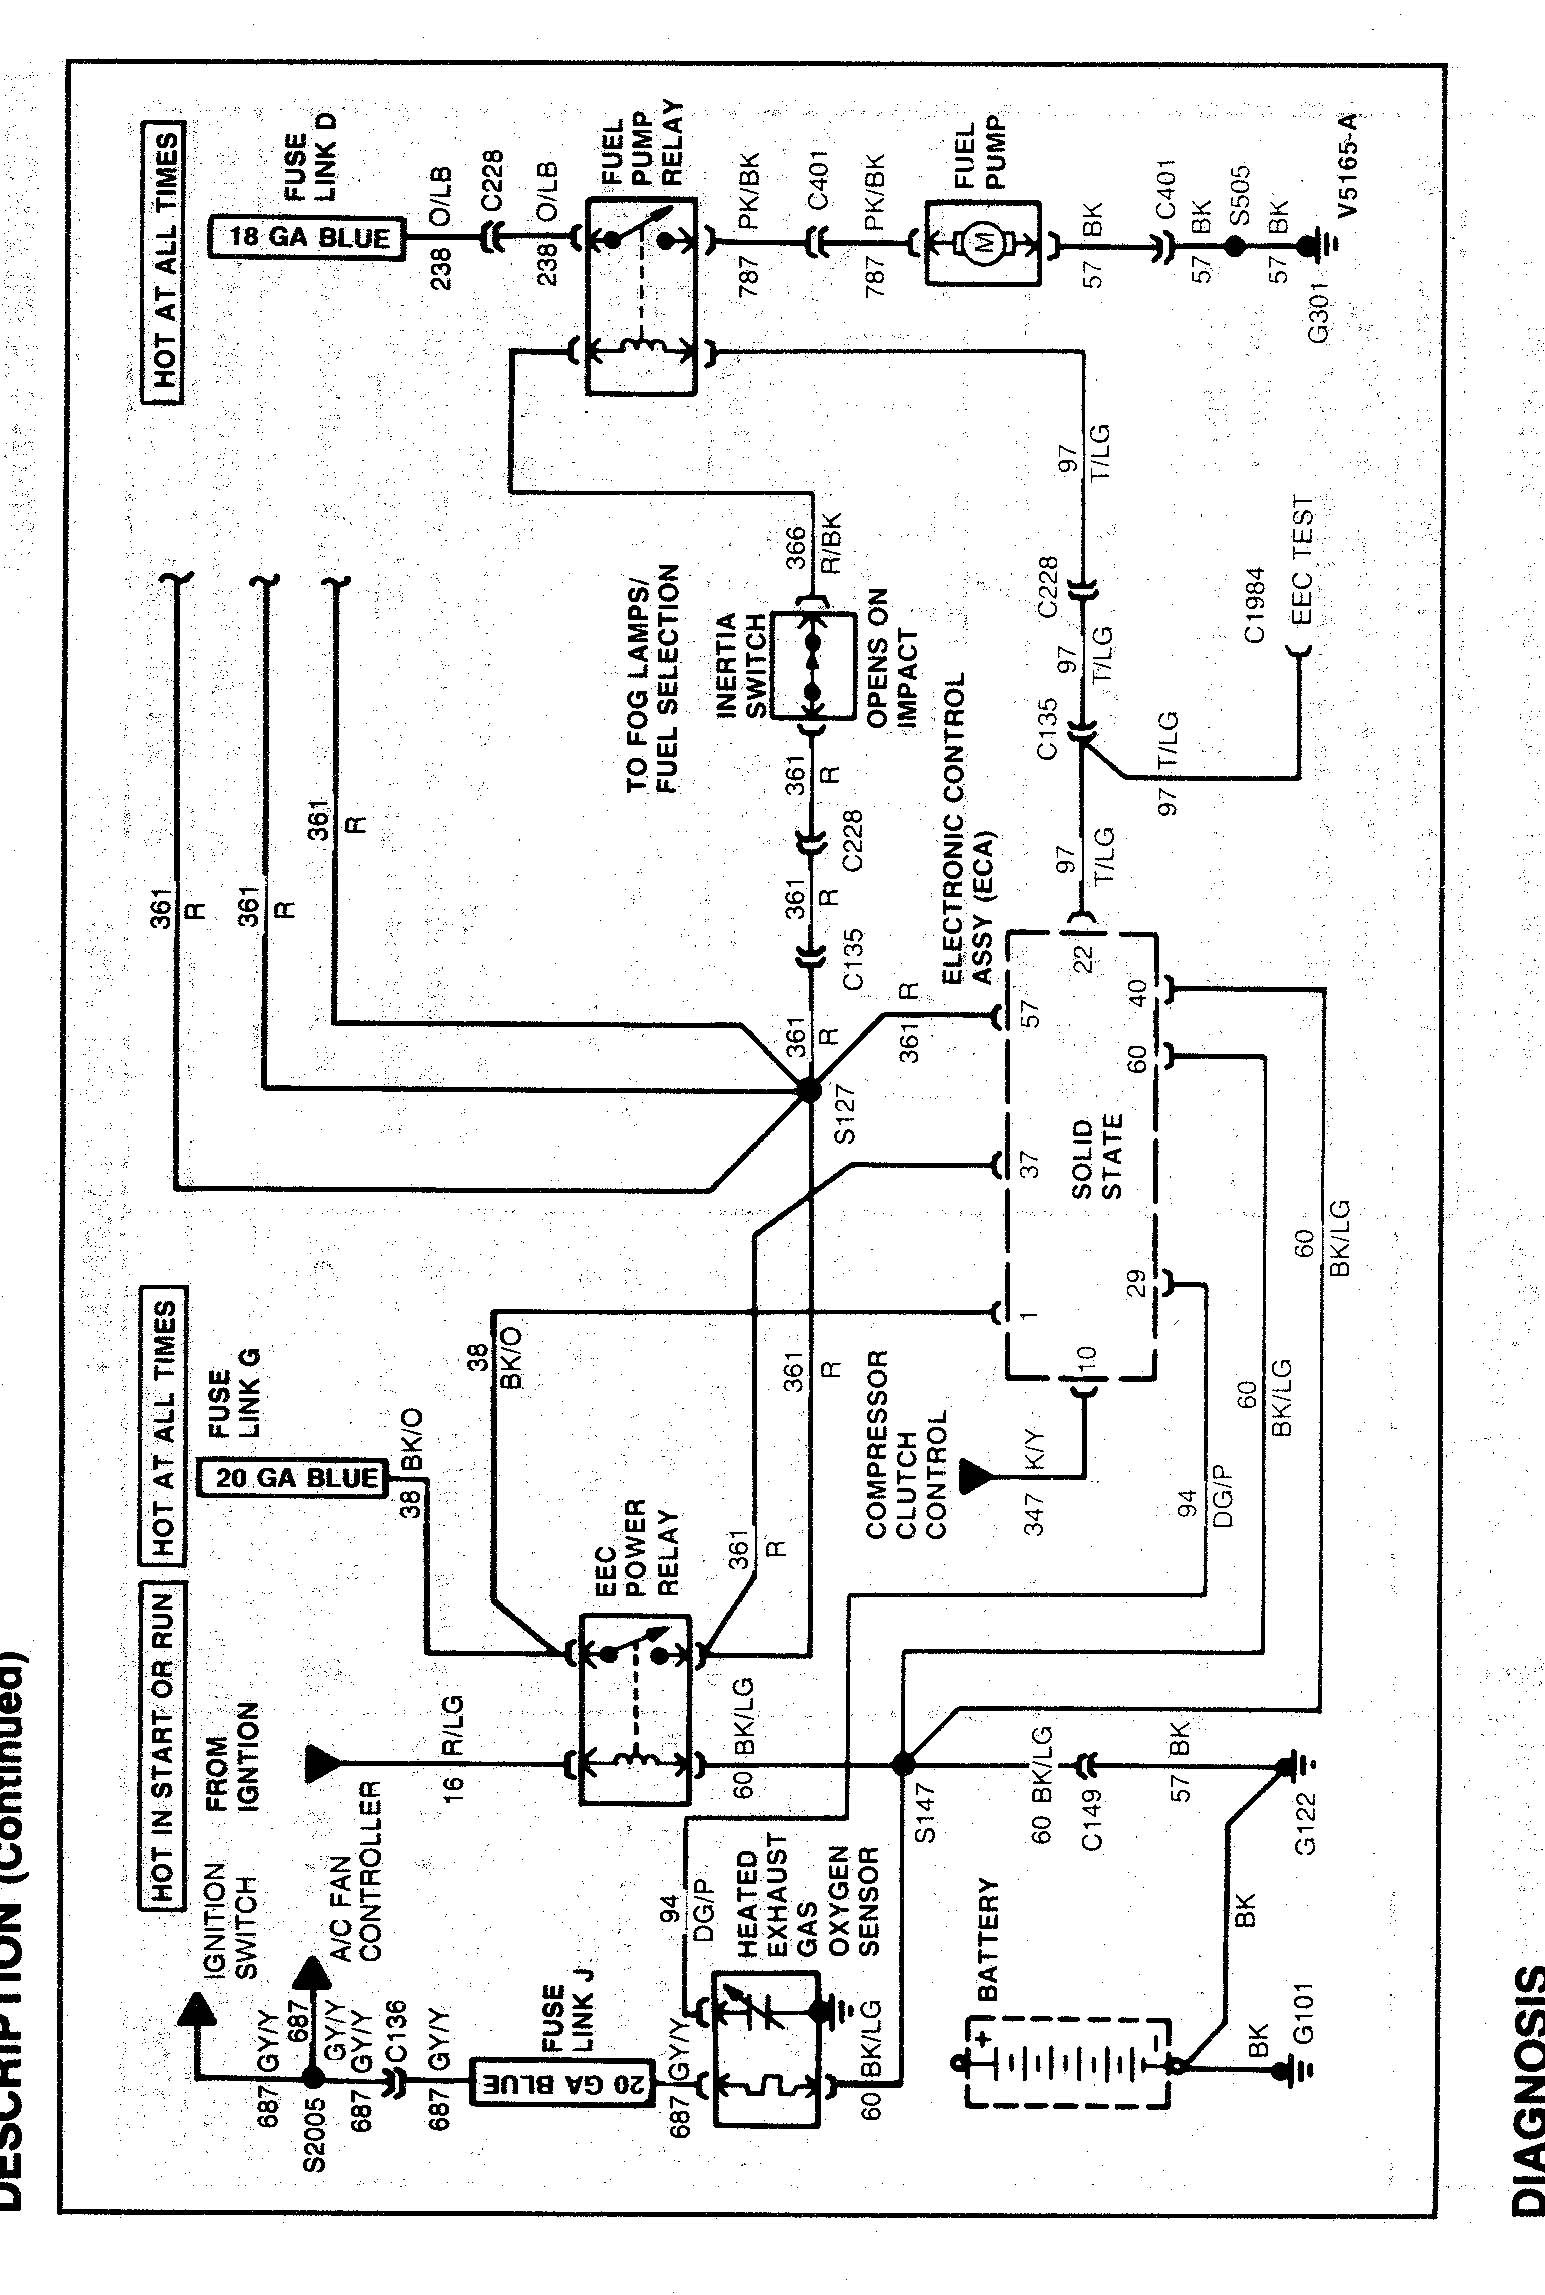 1928d1051592166 may electrical fuel pump but im not sure mustangfuelelectricaldiagram2 wiring diagram for 91 mustang fuel pump relay readingrat net ford fuel pump wiring diagram at gsmportal.co